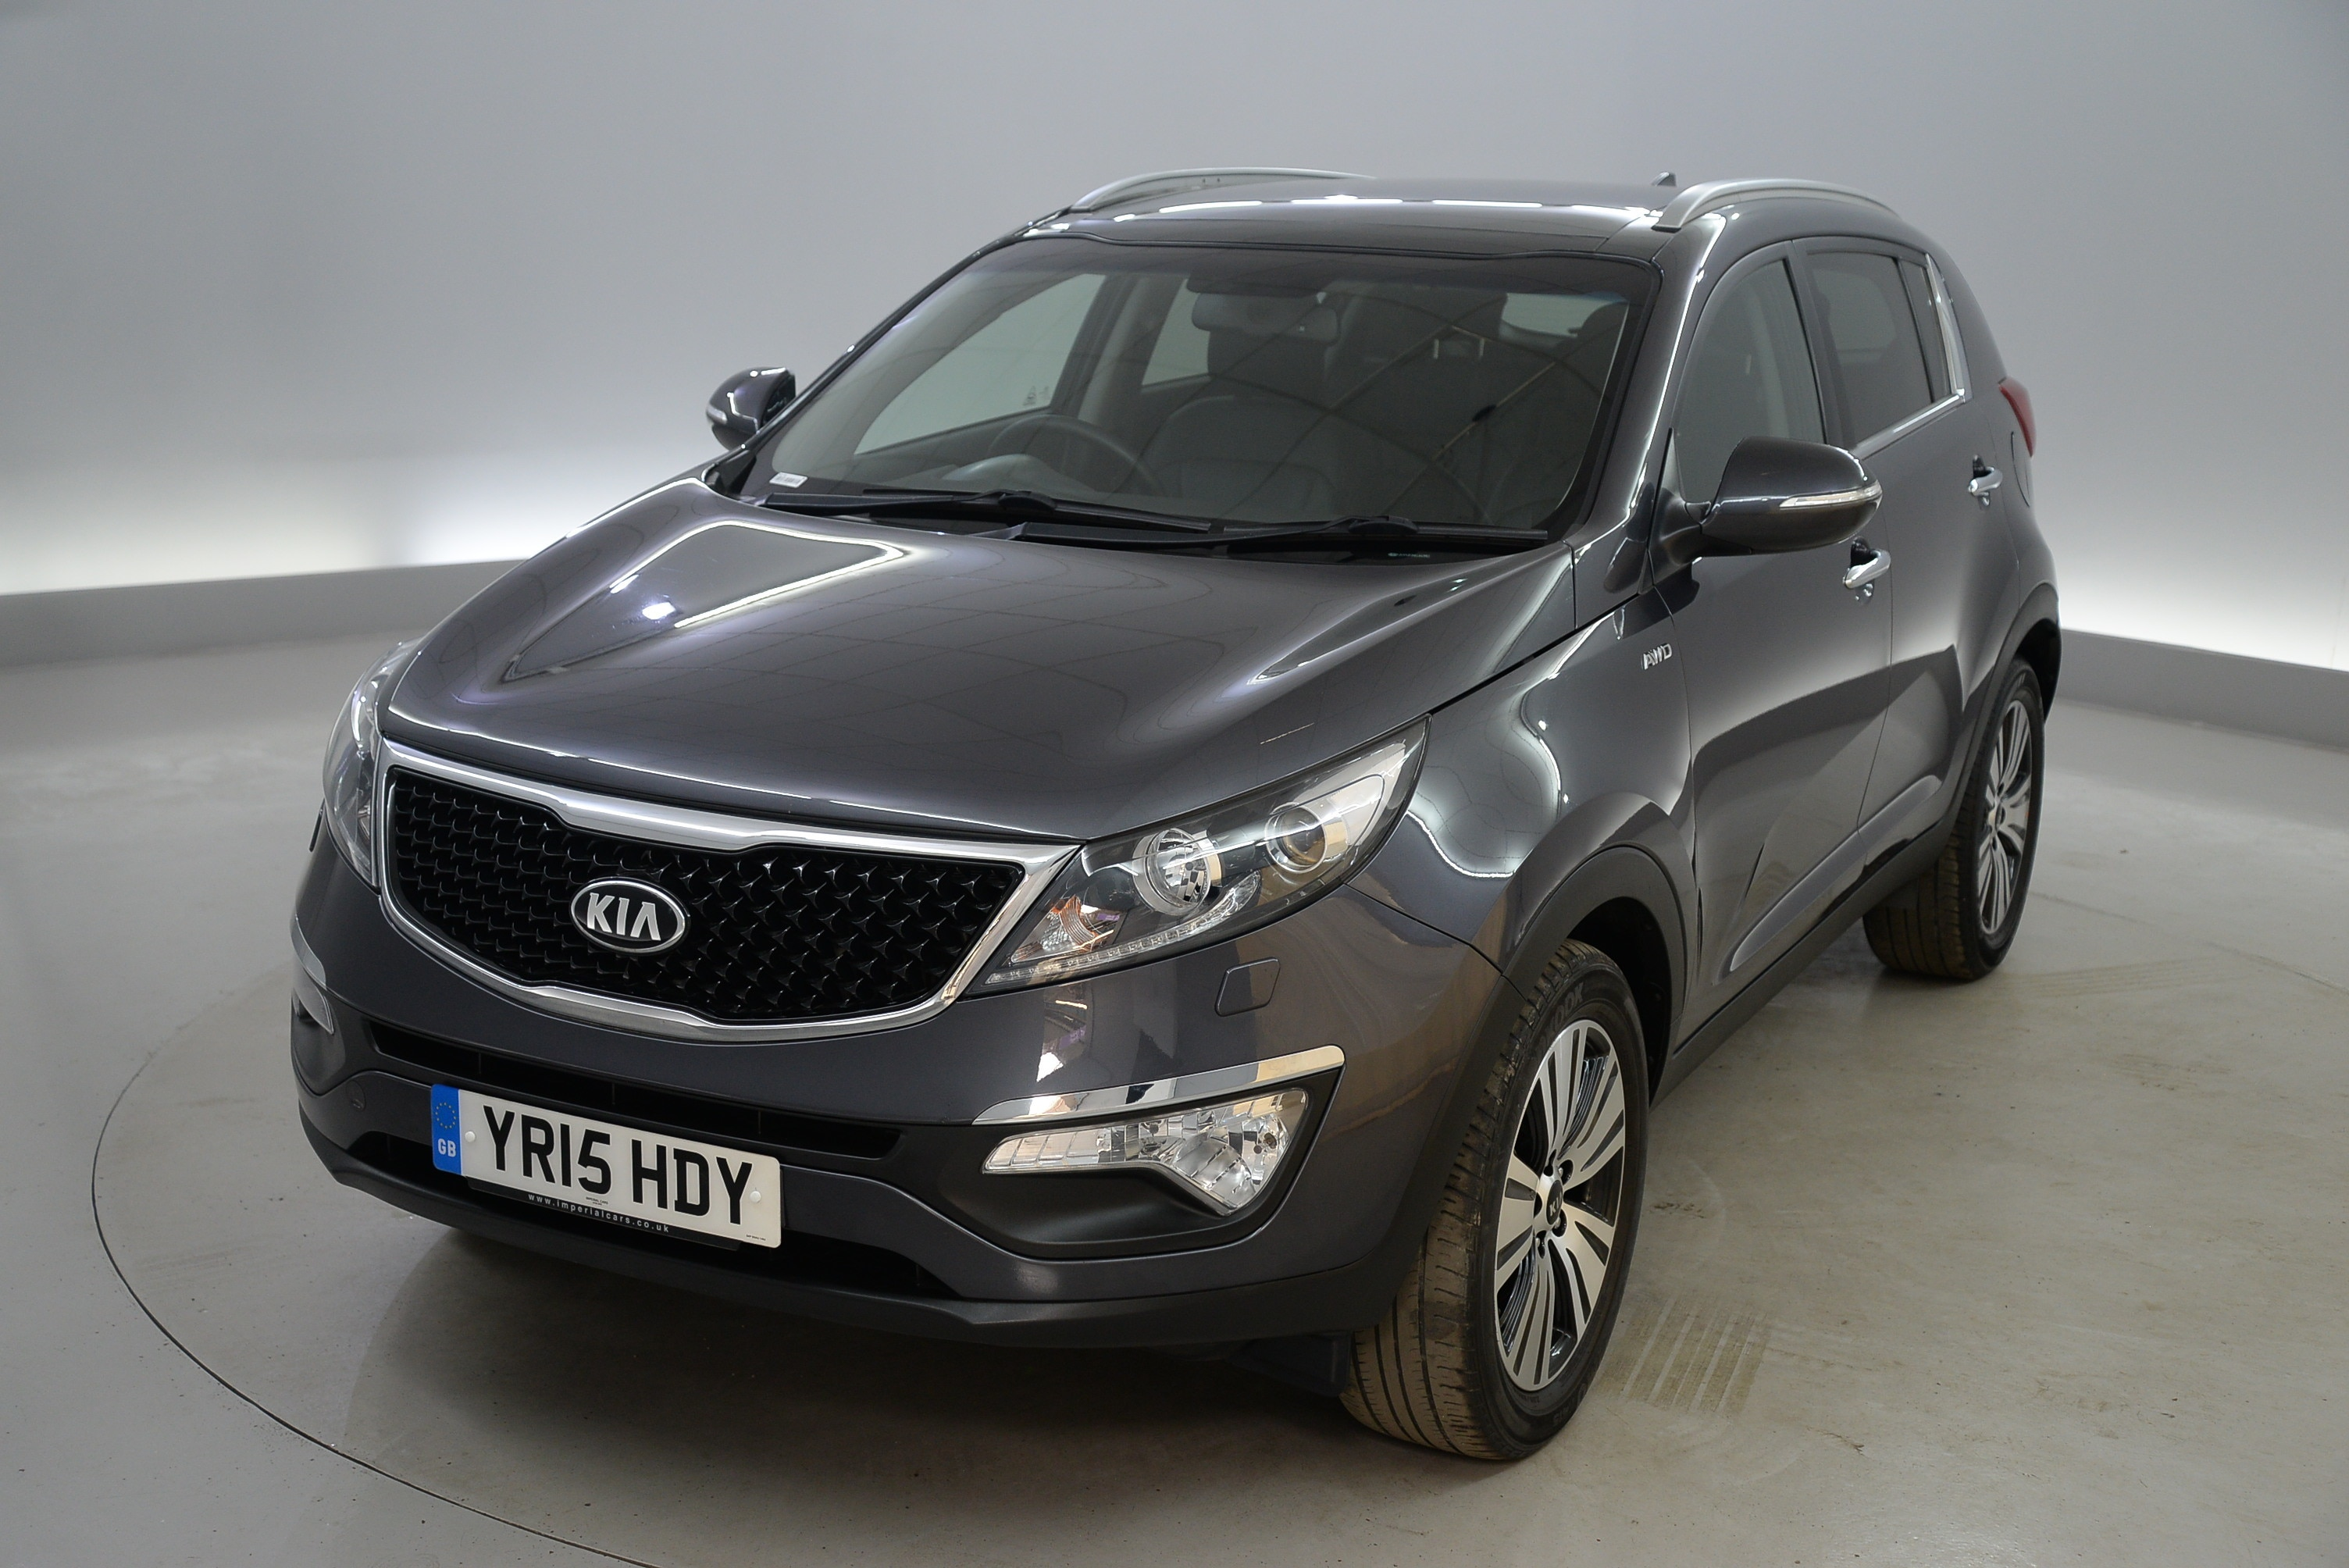 bhp reports forum kia it initial sportage s my sexy team orange drives ownership dashboard its test and